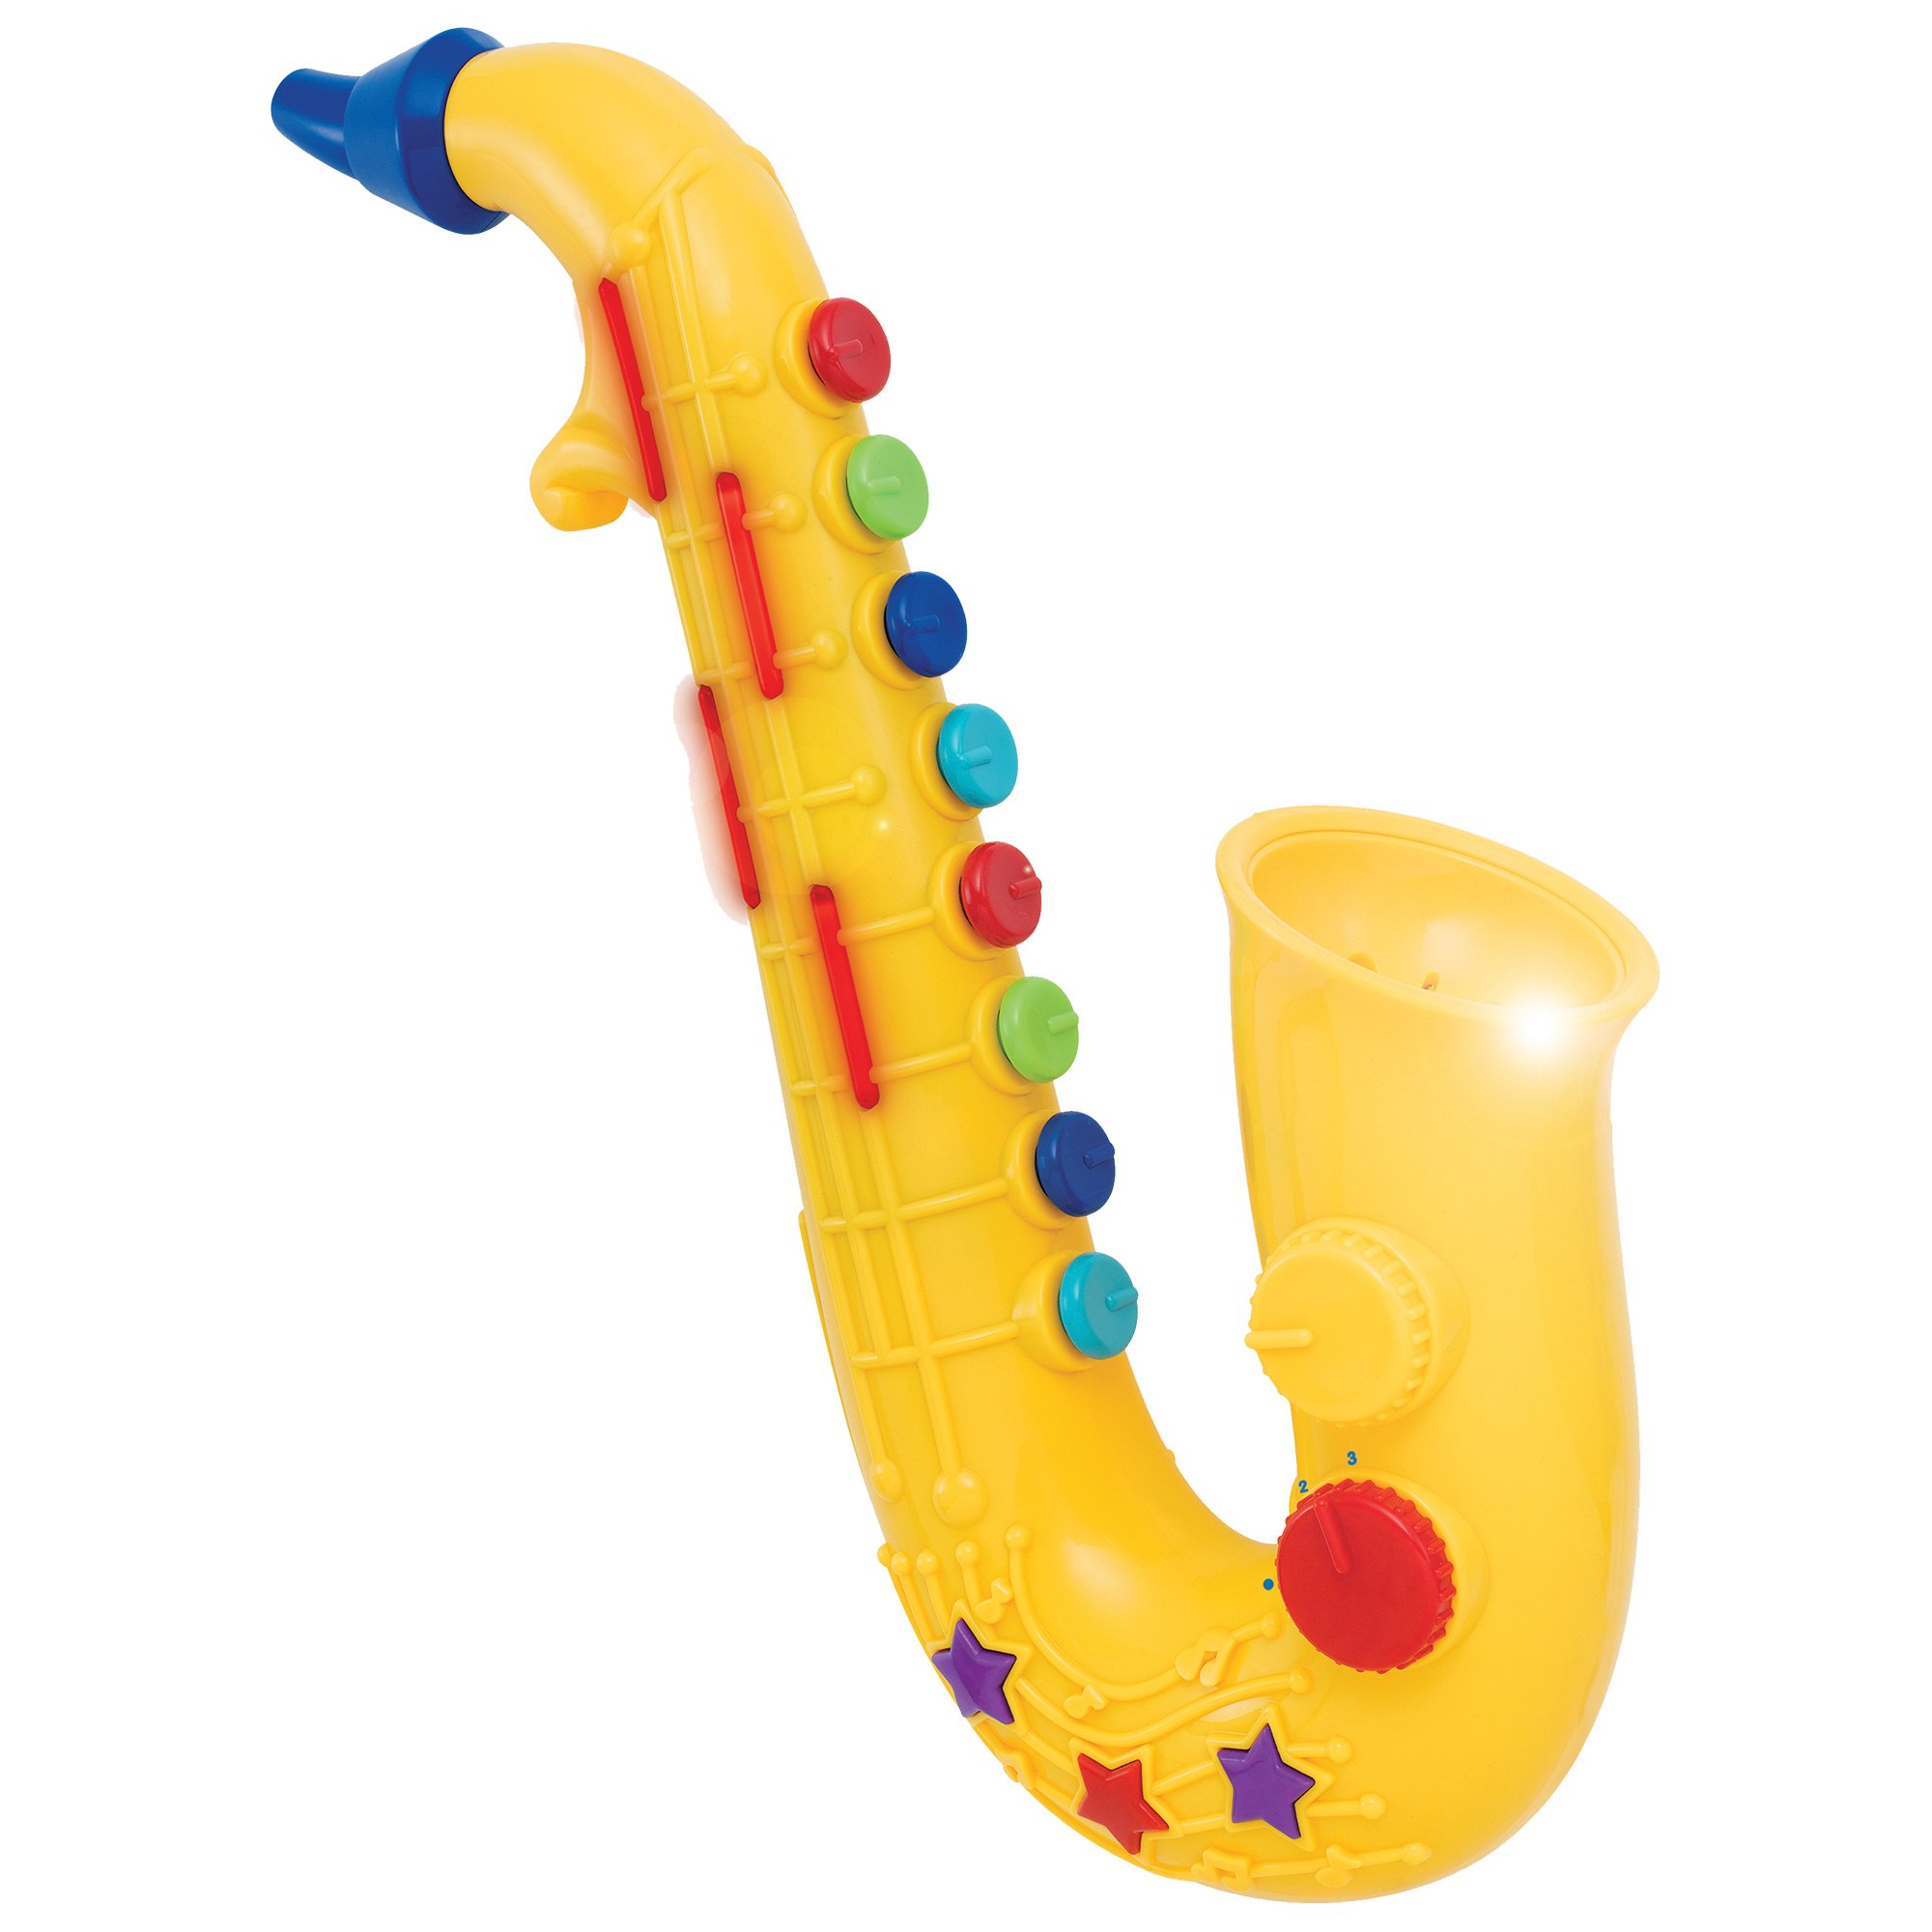 WinFun Triple Sounds Saxaphone